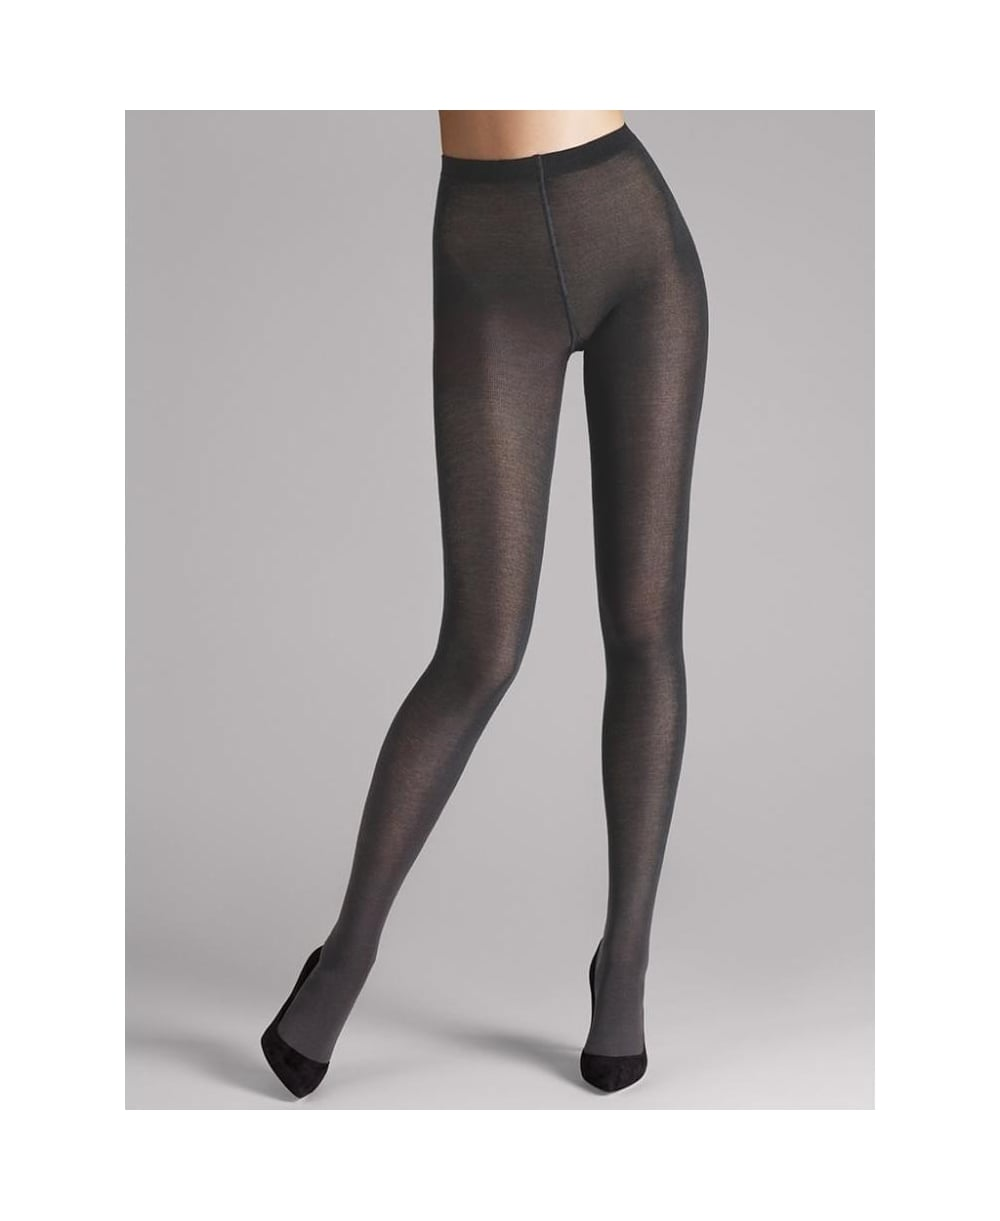 5510e1ba1f2886 Wolford Merino Tights - Tights from luxury-legs.com UK